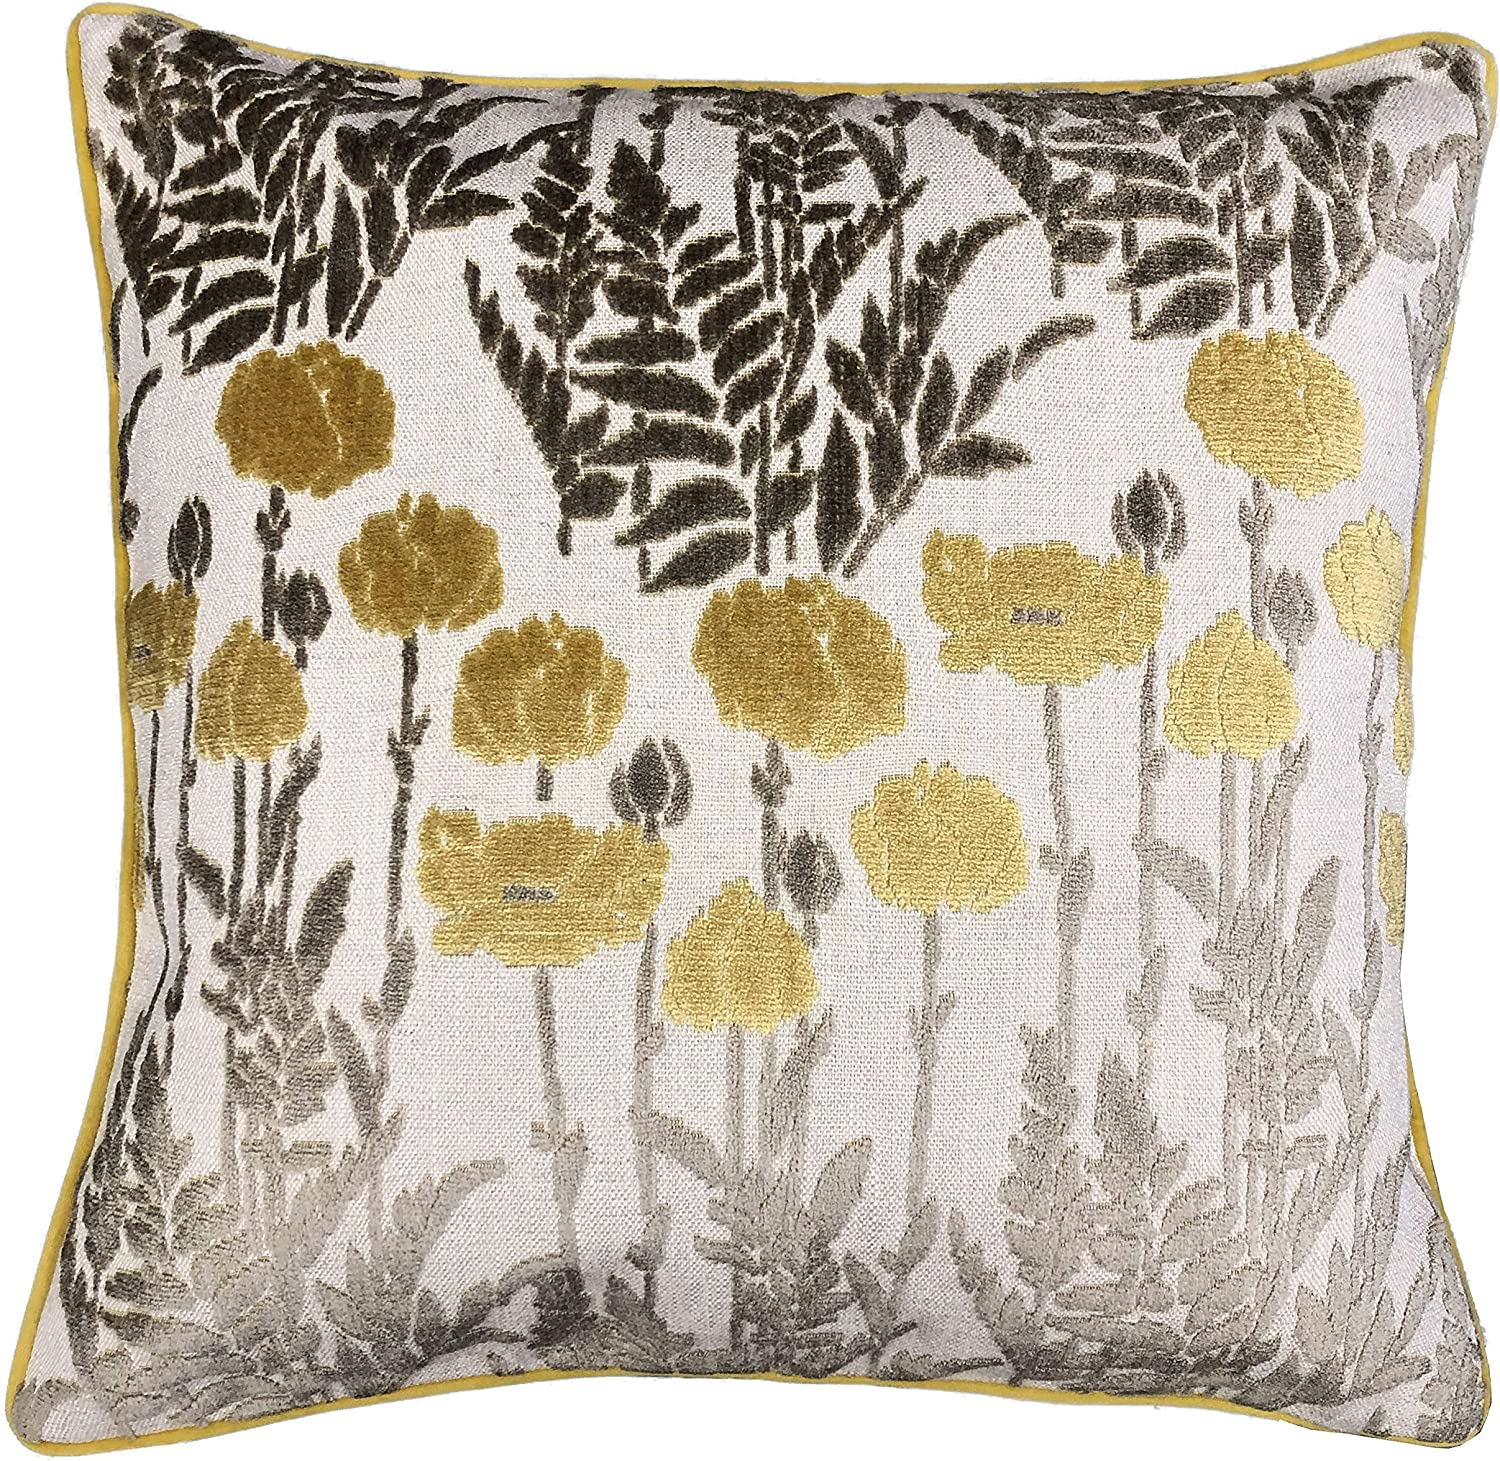 Amazon Com Rodeo Home Camelia Decorative Floral Cut Velvet Square Throw Pillow With 100 Feather Fill Insert For Sofa Couch Bed 23 X23 Mustard 23x23 Home Kitchen